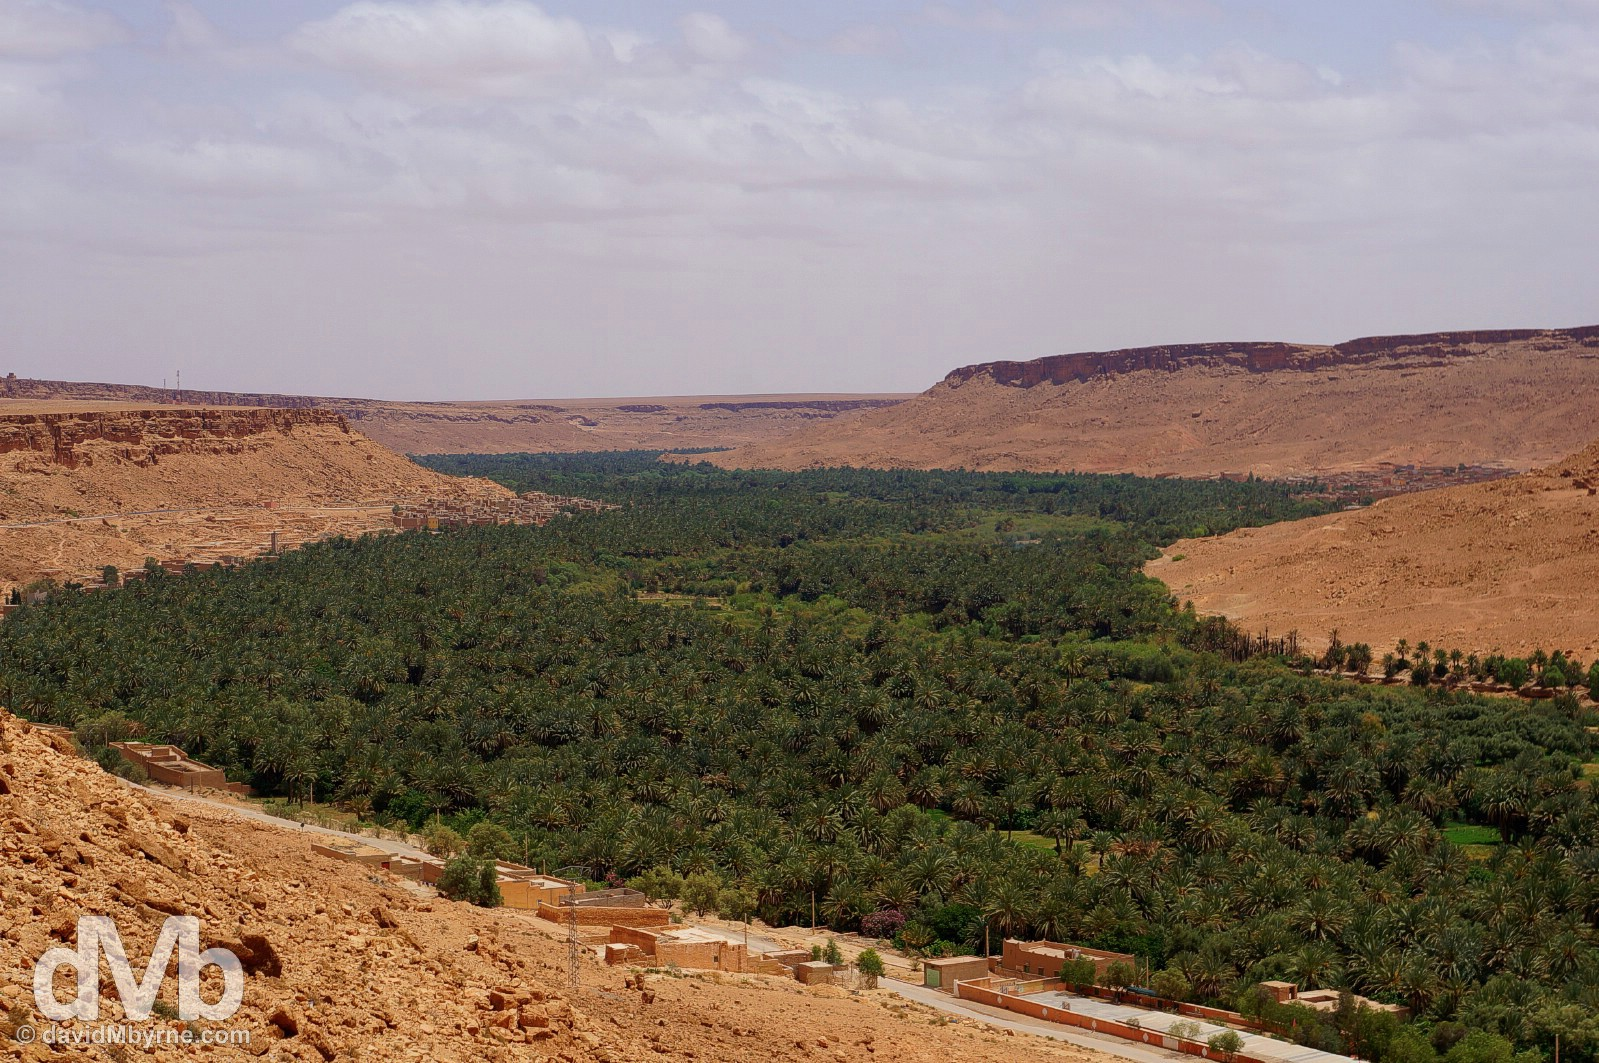 A vast palmarie resting in a lush river valley as seen from the N13 between Er Rachidia and Merzouga, southeastern Morocco. May 18, 2014.